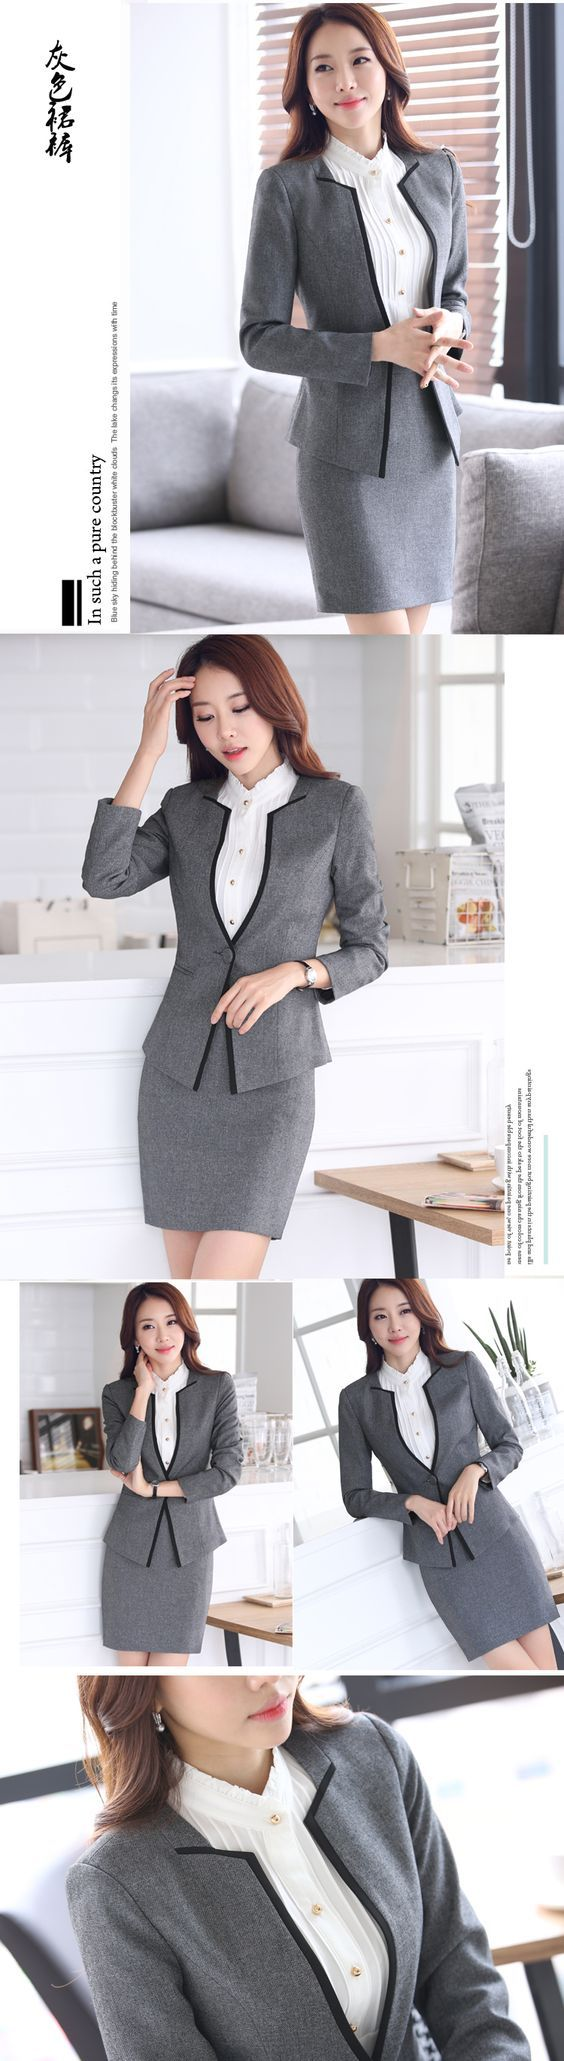 2016 New Formal Women Formal Suits with Pant for Office Ladies Business V-neck Suit Red Black Gray Professional Workwear Clothes > Nice plus size clothing shop for everybody: